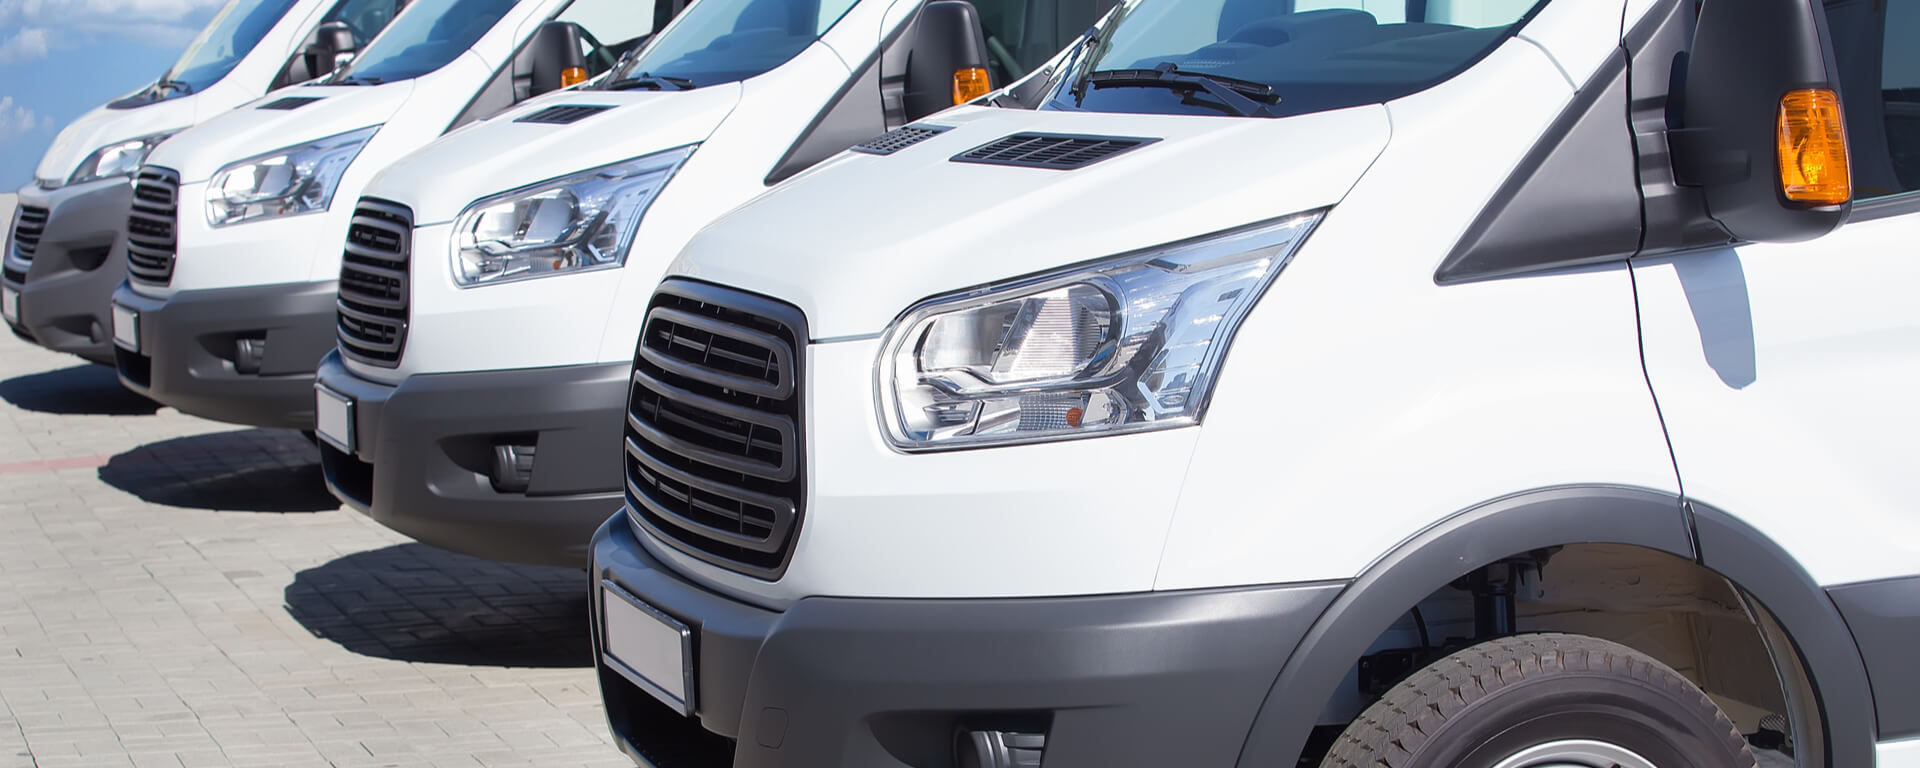 Private and Limited Business Use Minibus Insurance Header Image